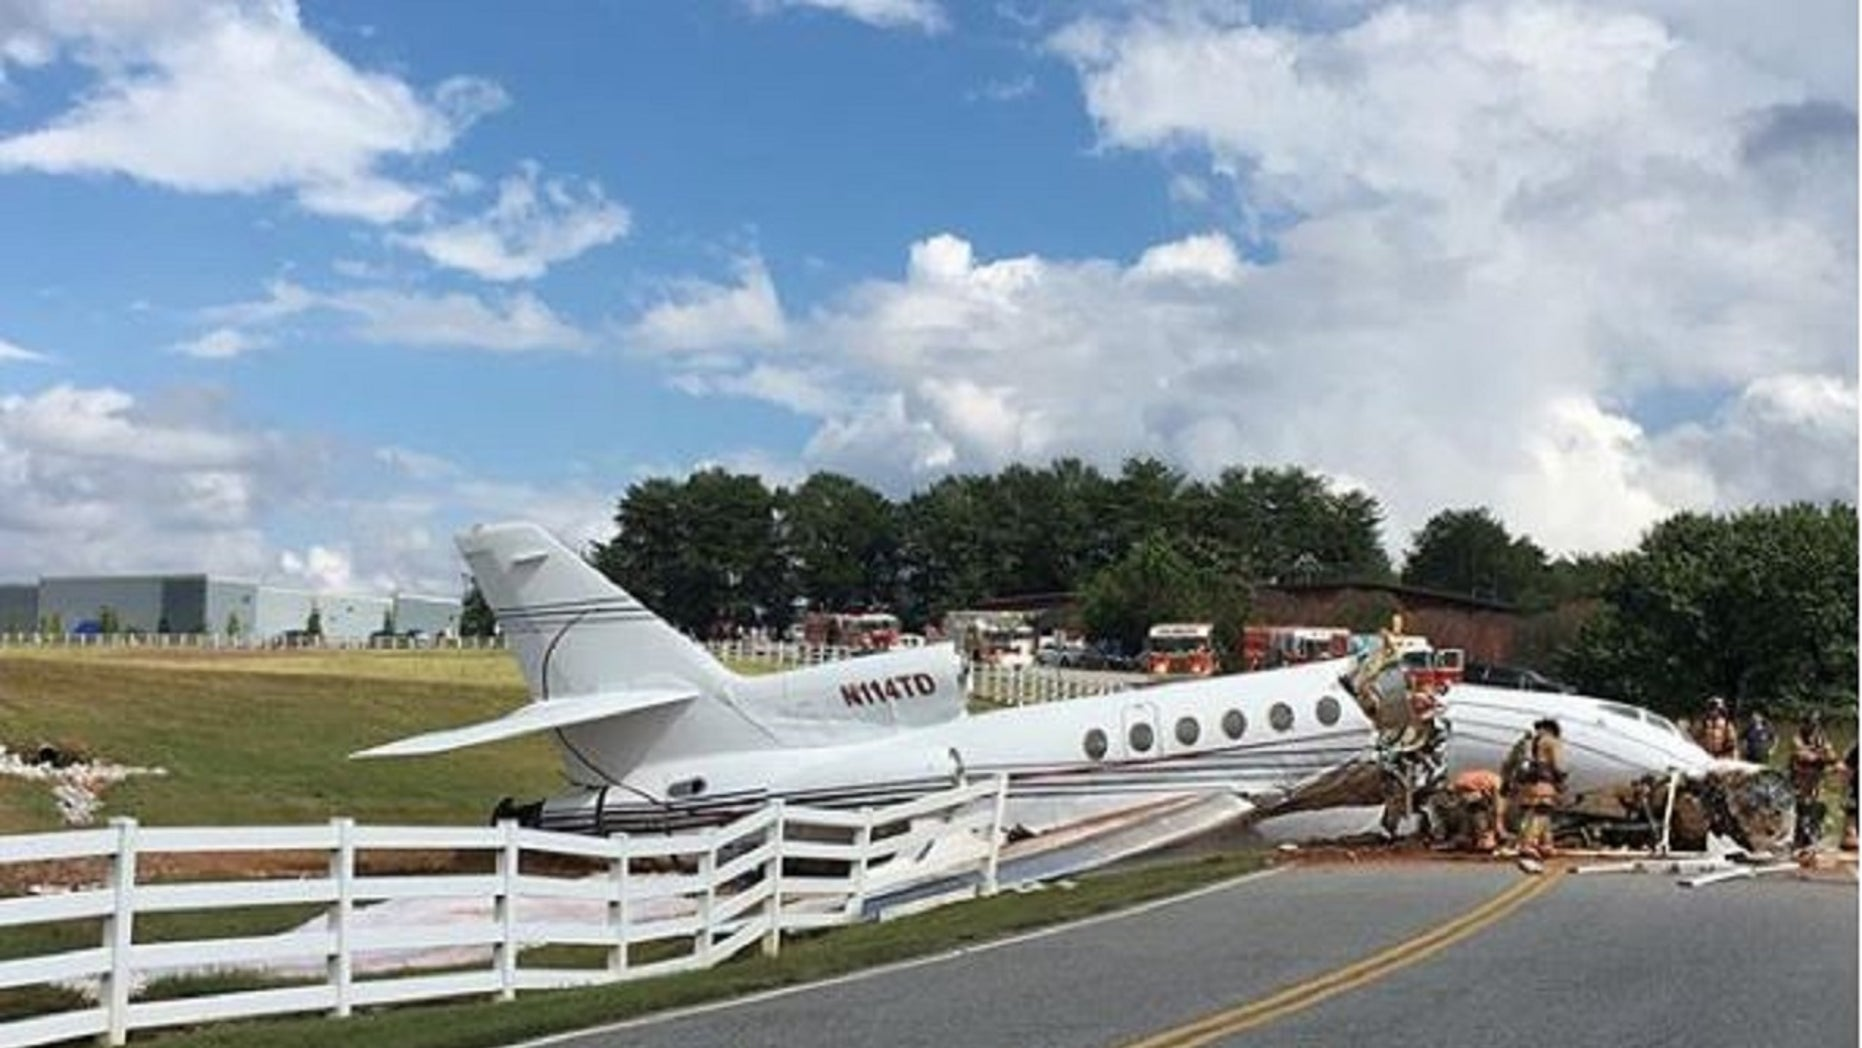 Jet crashes in South Carolina after unwell to stop on runway, murdering during slightest 2